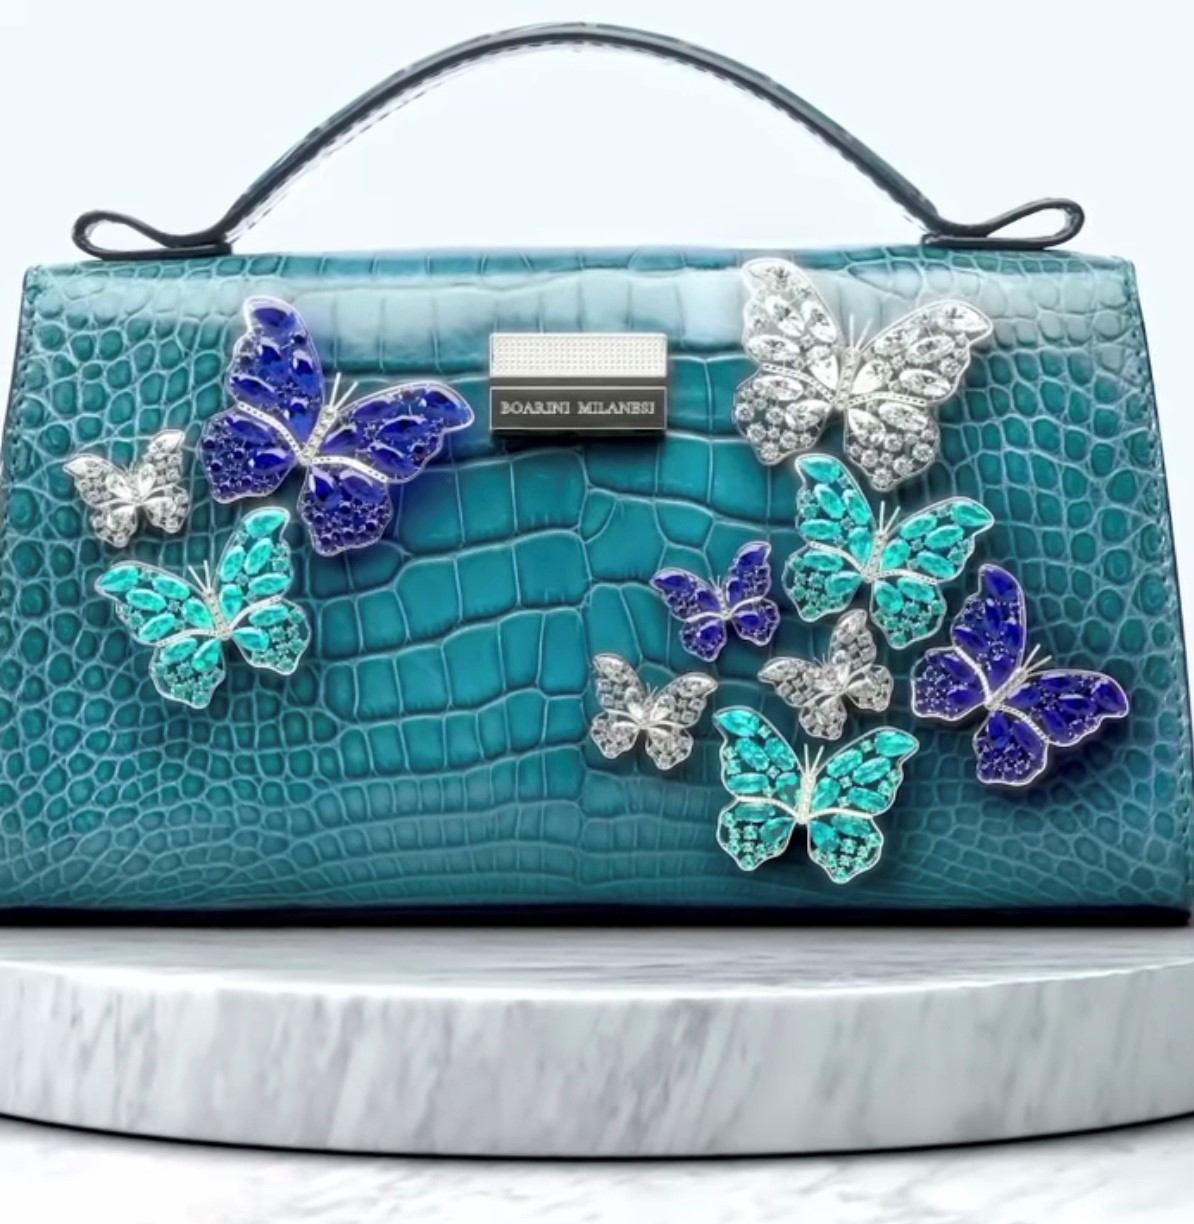 World's most expensive handbag which was created to help save the oceans